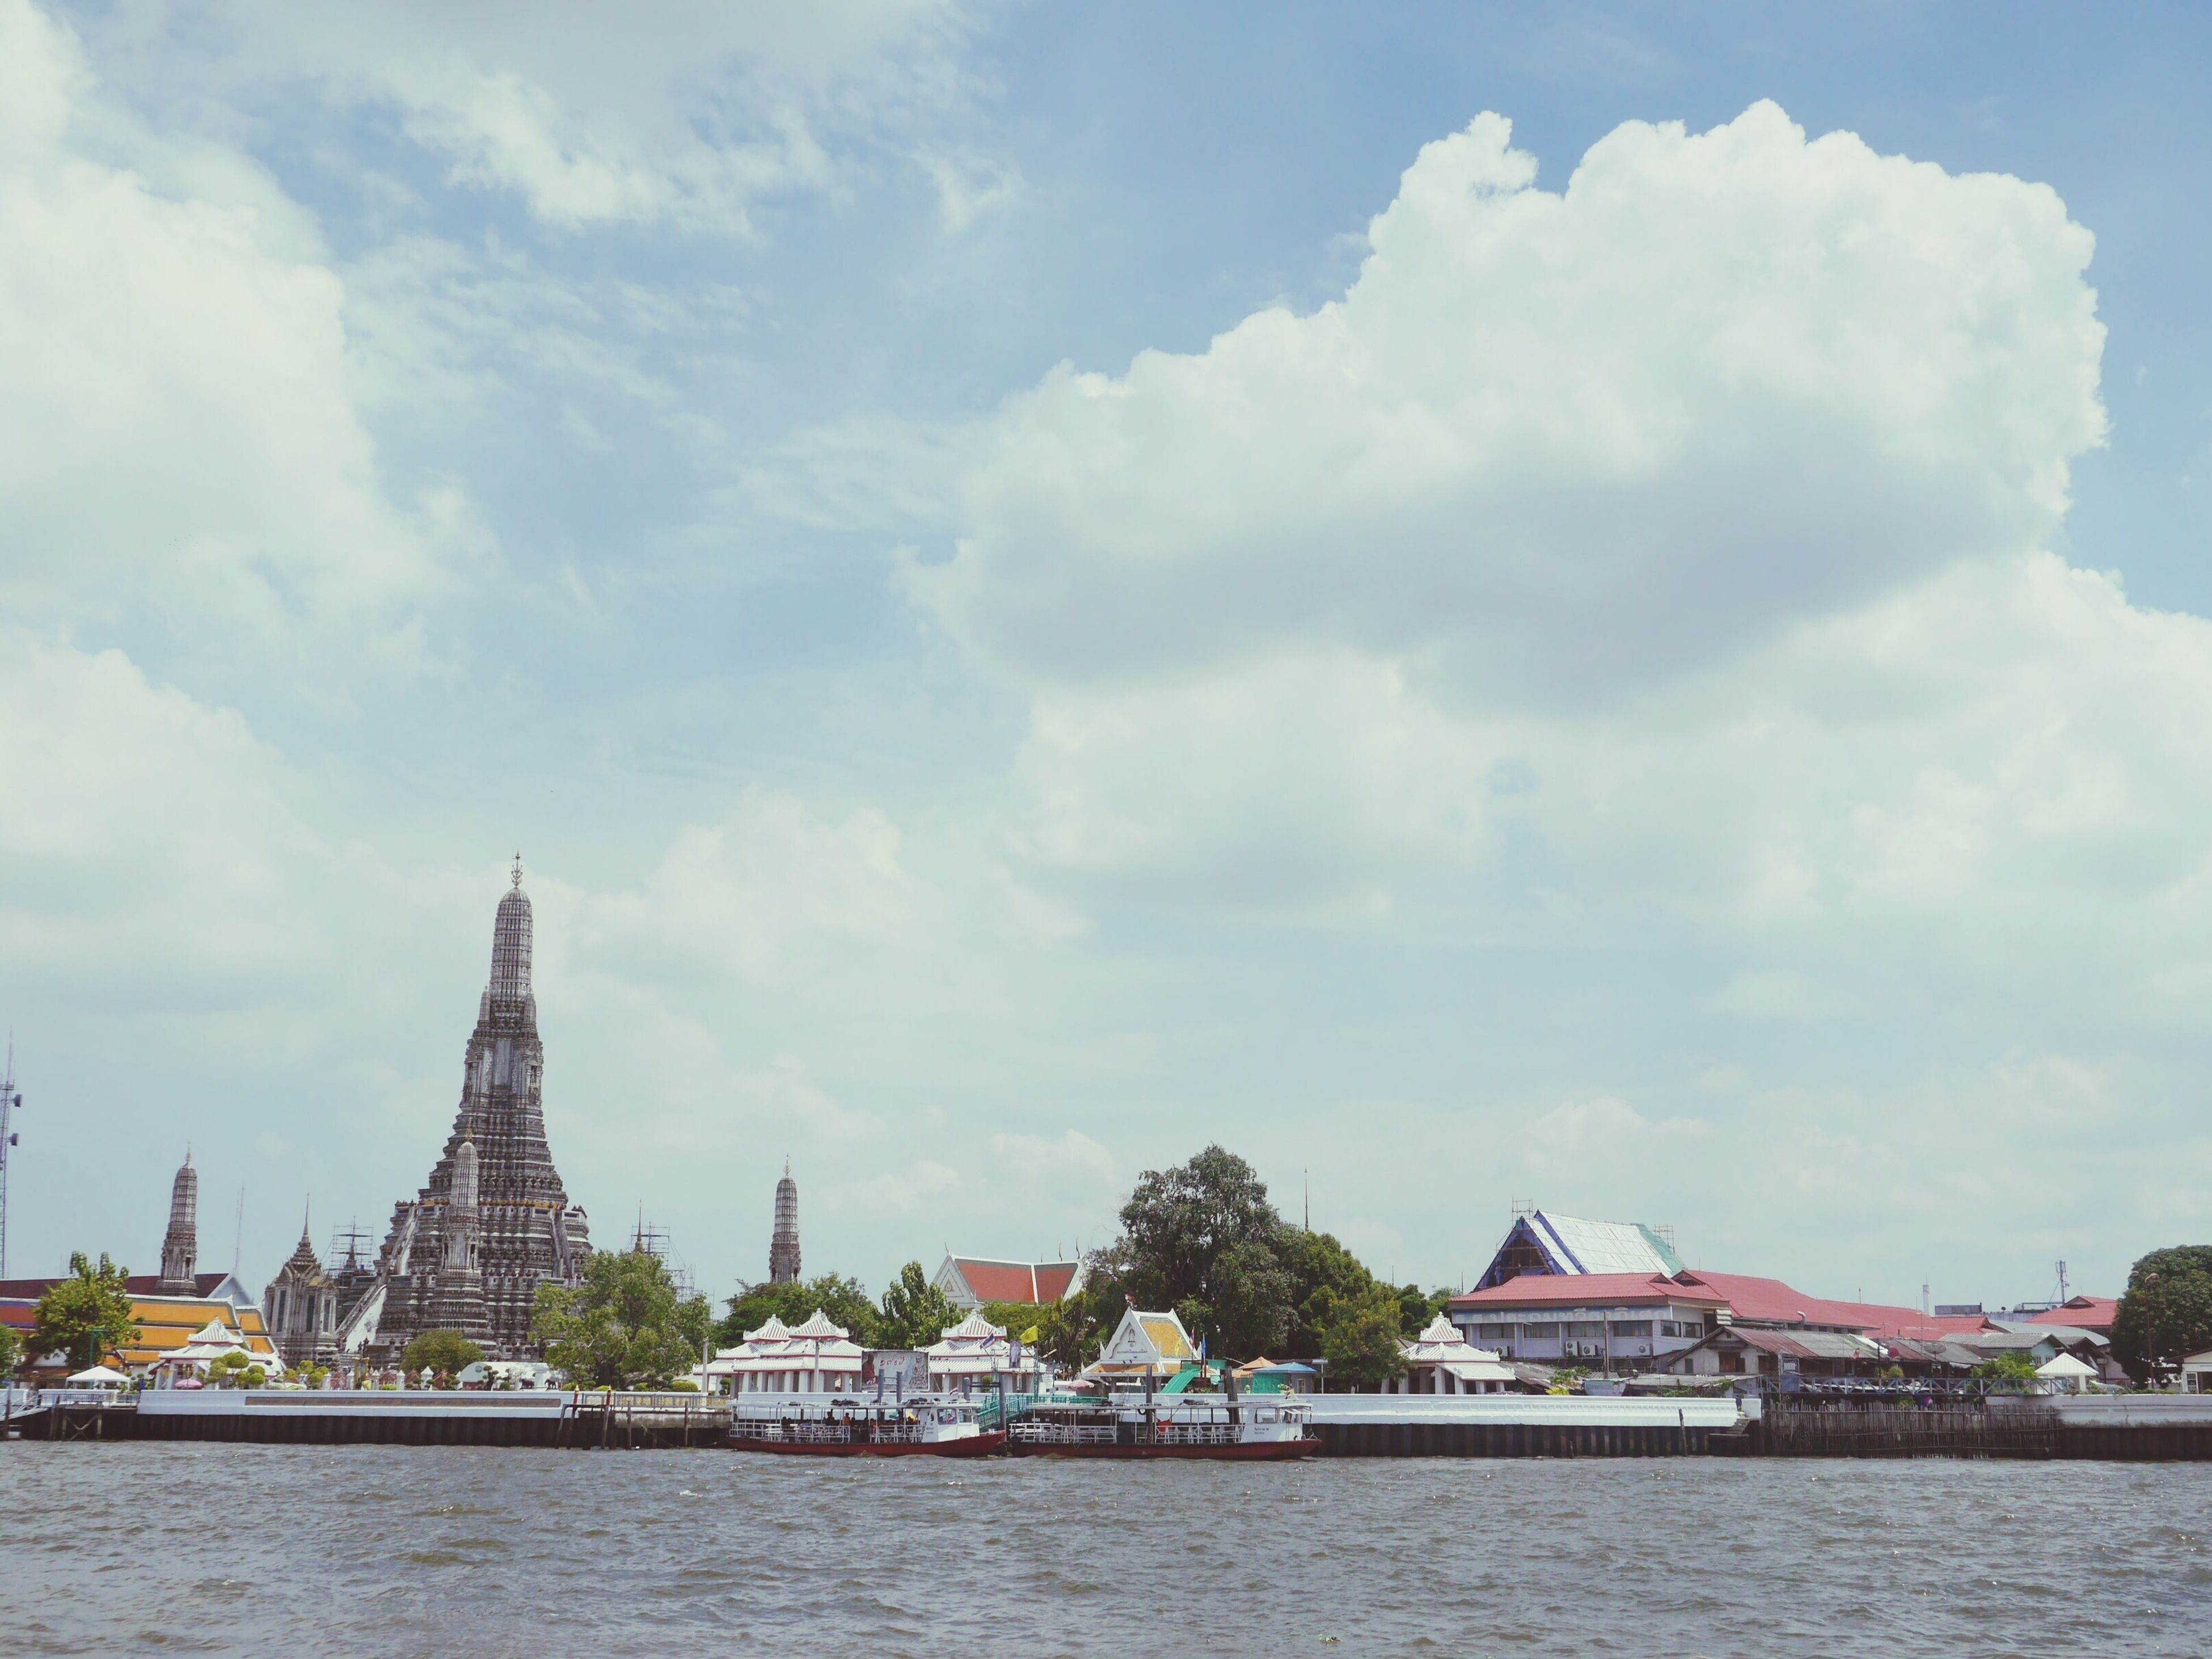 architecture, water, building exterior, built structure, waterfront, sky, cloud - sky, river, nautical vessel, cloudy, cloud, tree, transportation, city, day, mode of transport, canal, boat, outdoors, lake